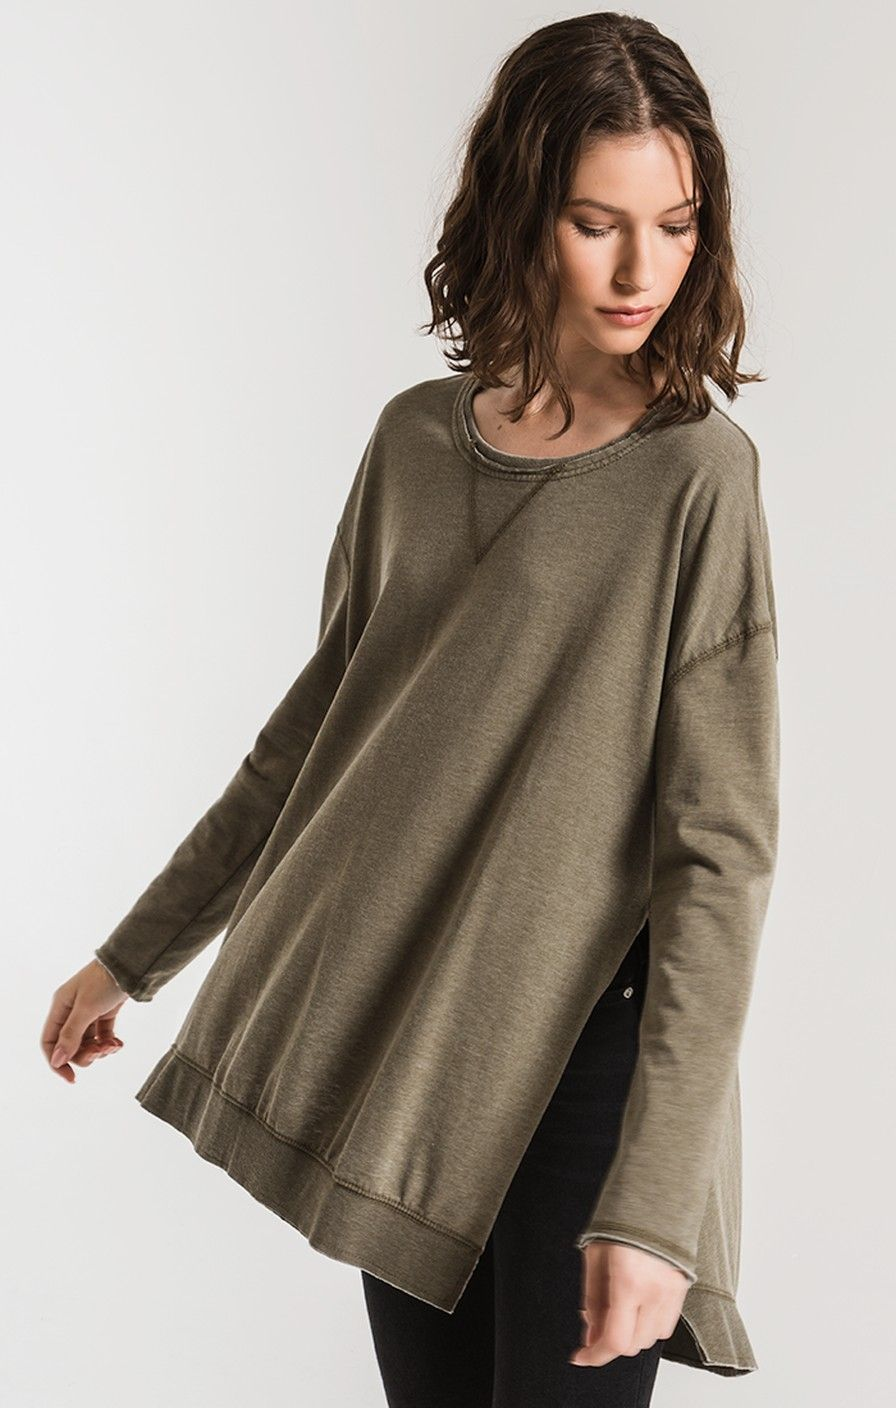 The Weekender Pullover Sweater Z Supply Clothes Pullover Sweaters Oversized Top